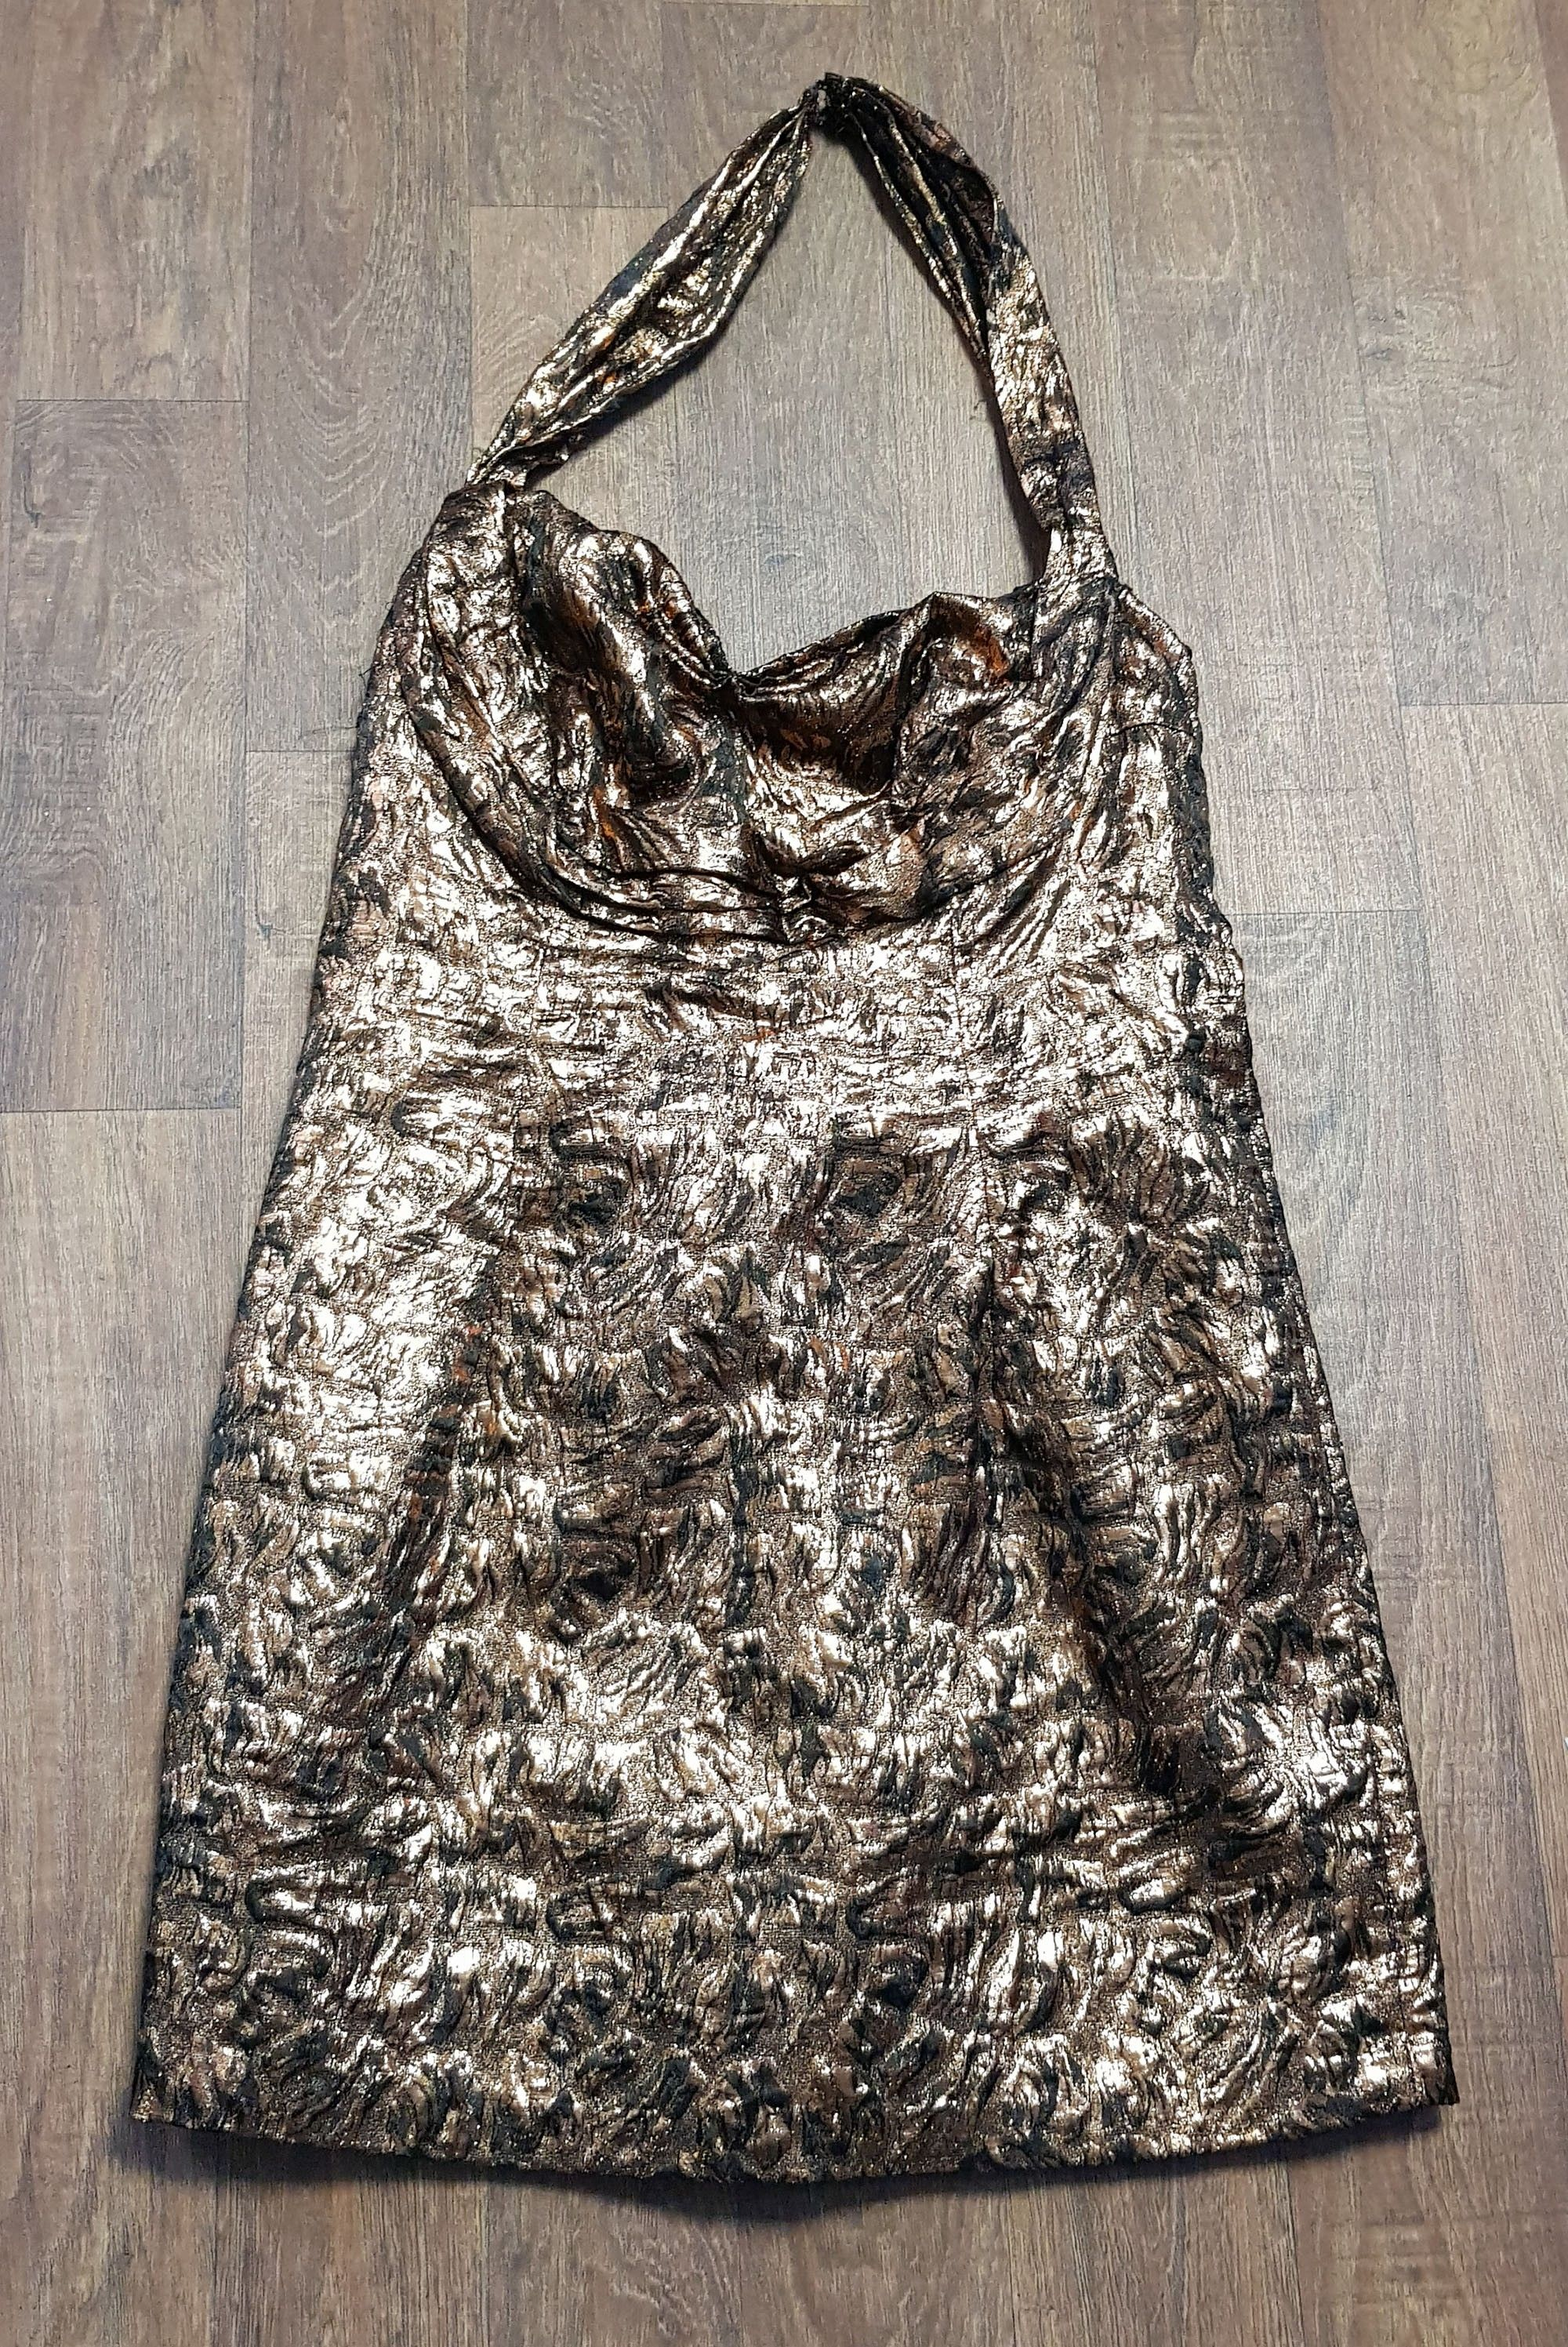 1980s Vintage Bronze Metallic Mini Party Dress UK Size 12/14